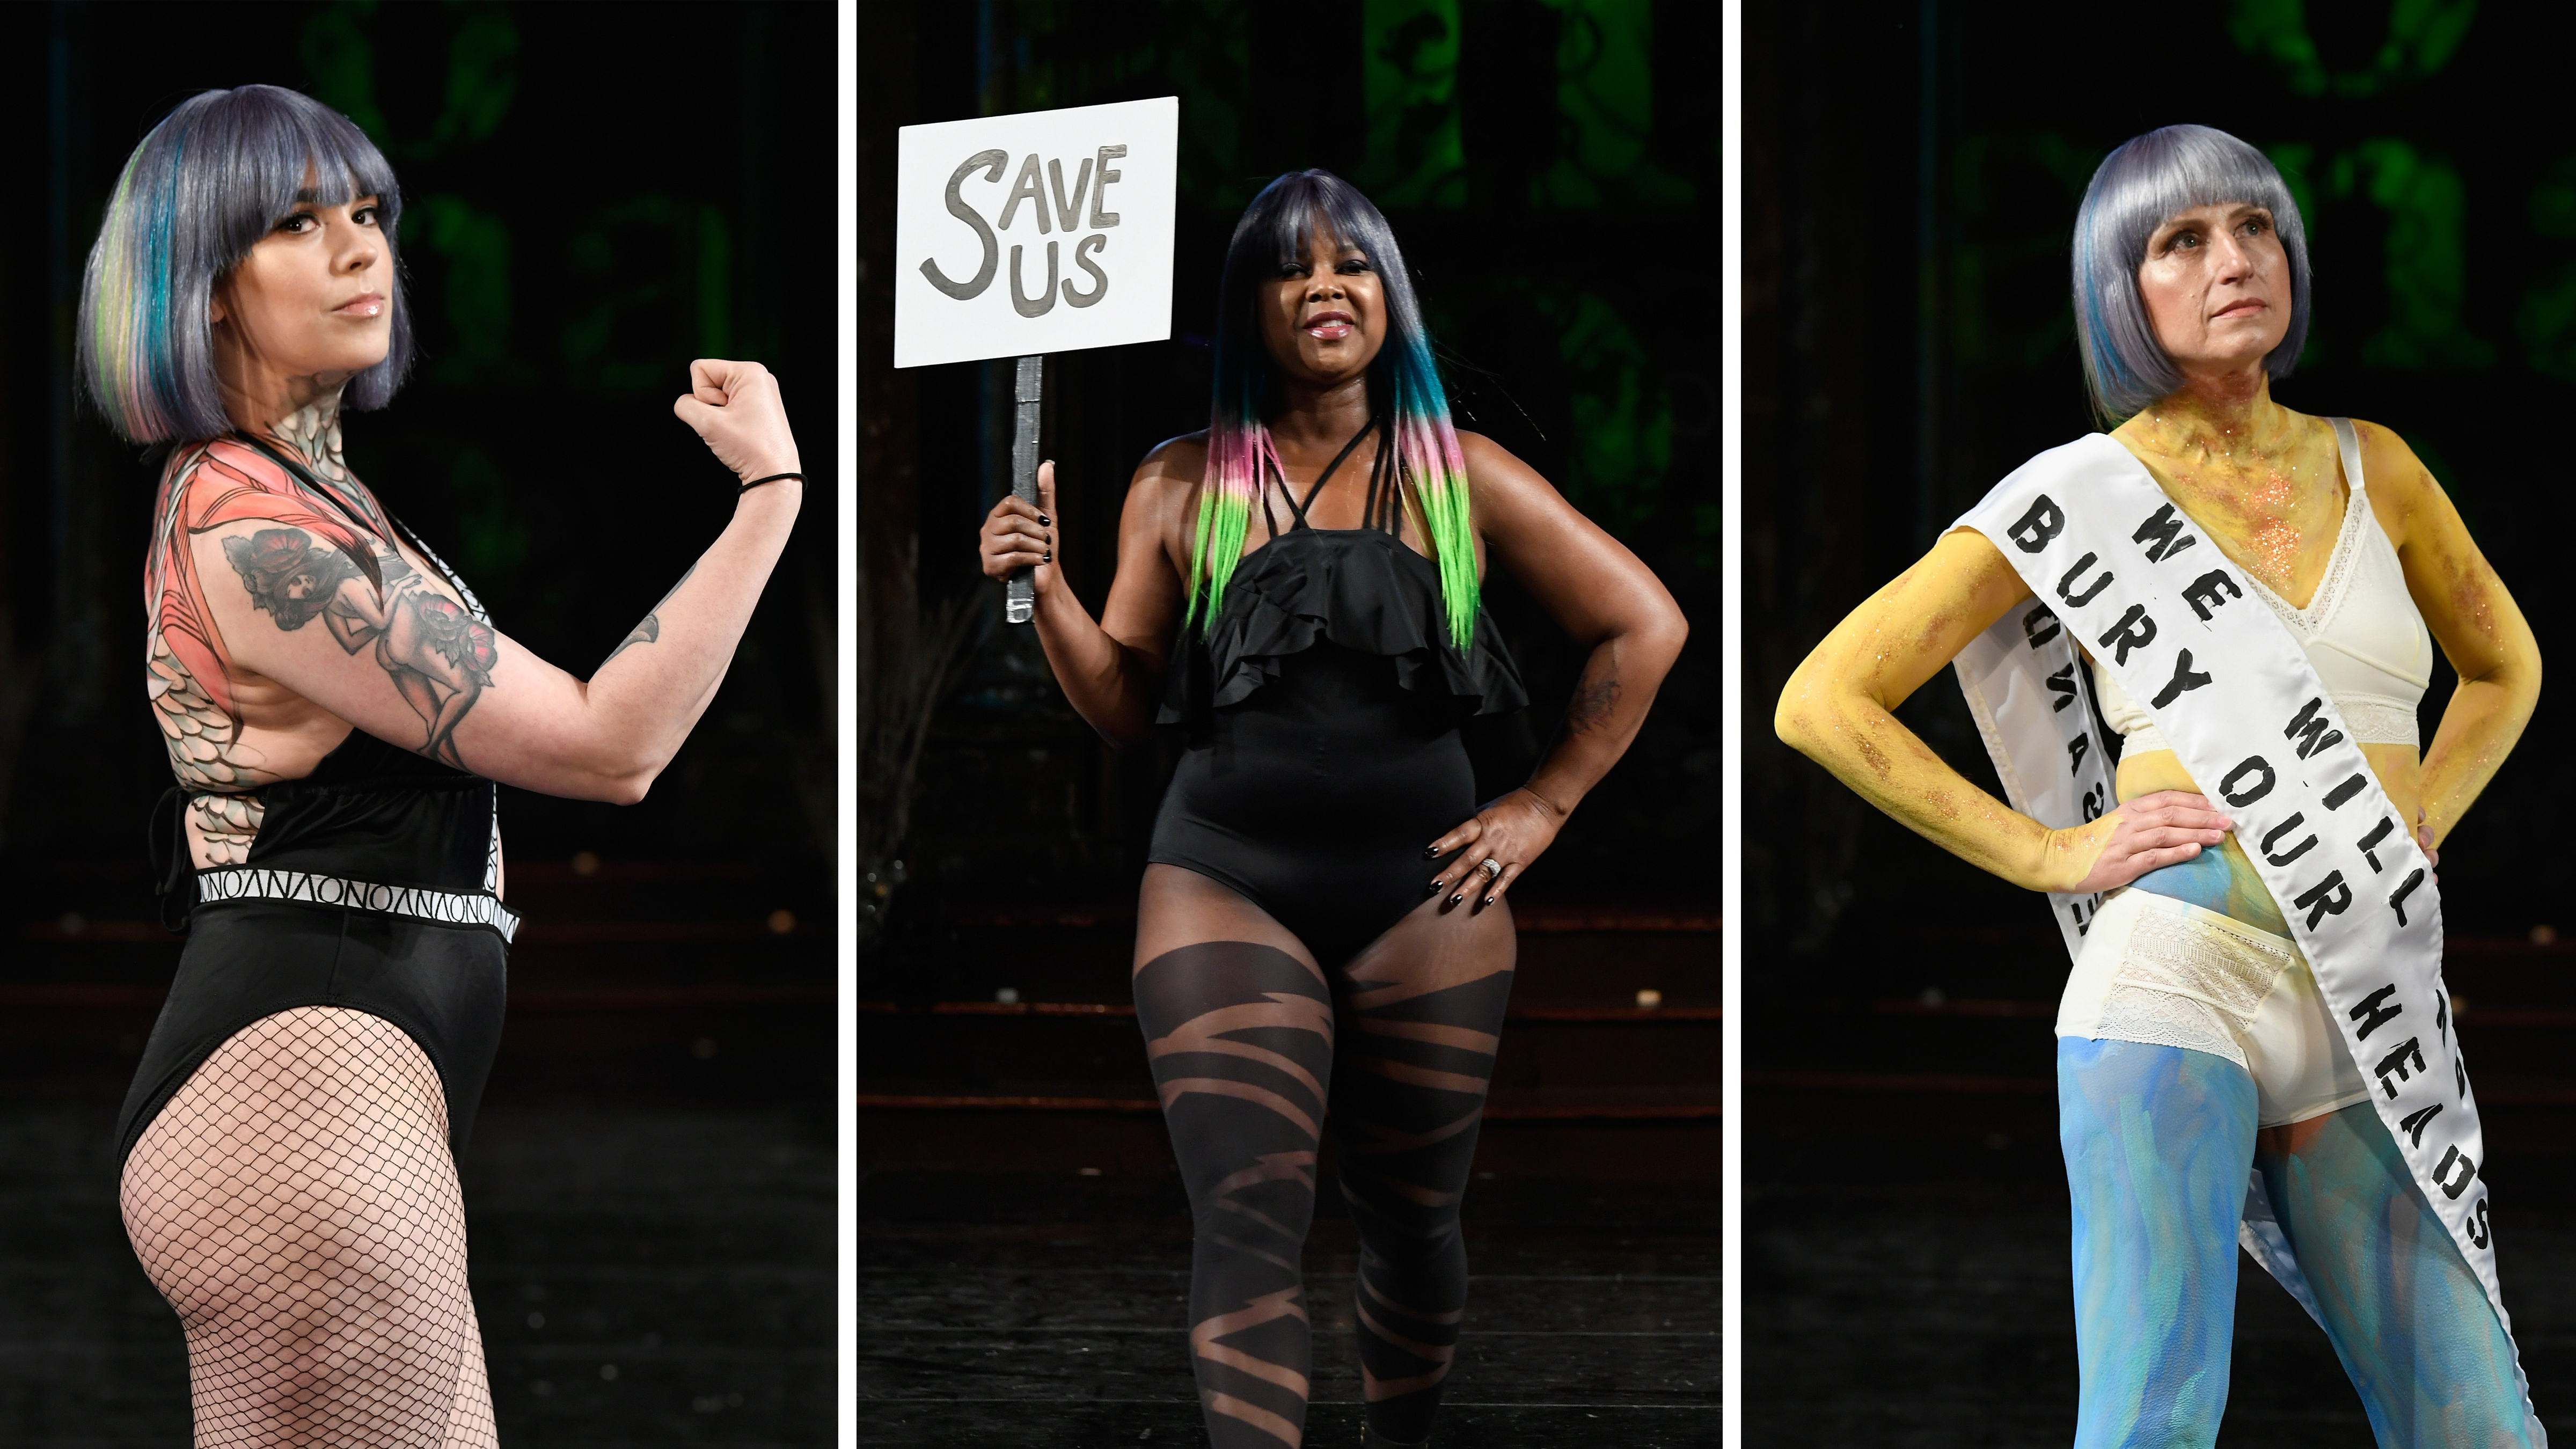 'Not Letting It Define Us' — Walking The Runway With Metastatic Breast Cancer